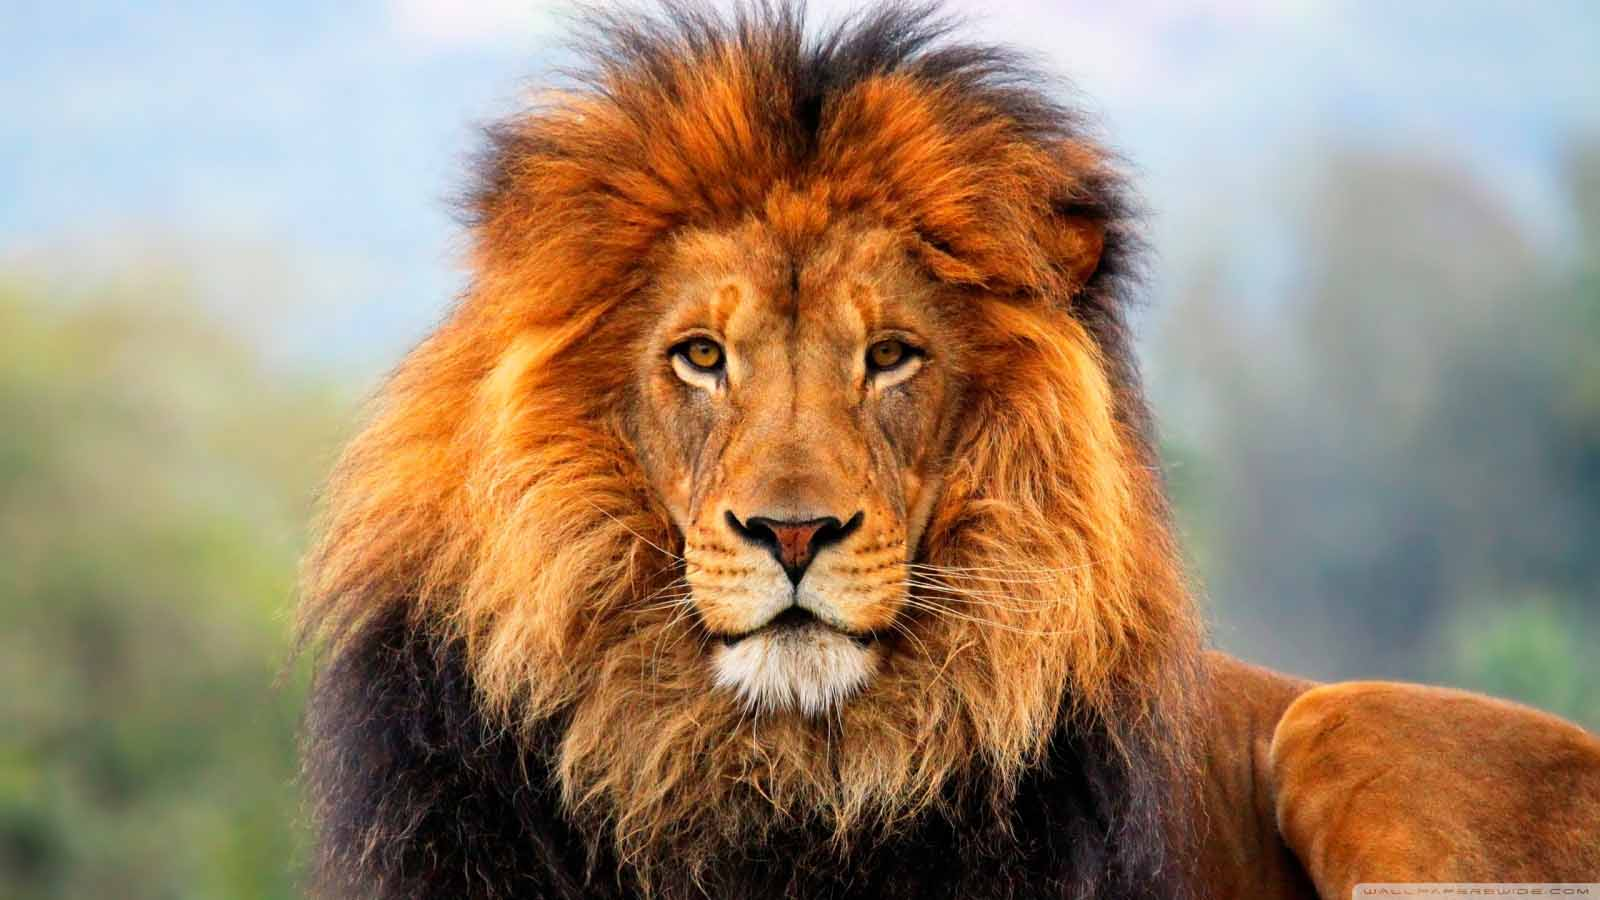 Download Best Lion Wallpapers Hd For Pc Windows And Mac Apk Osx